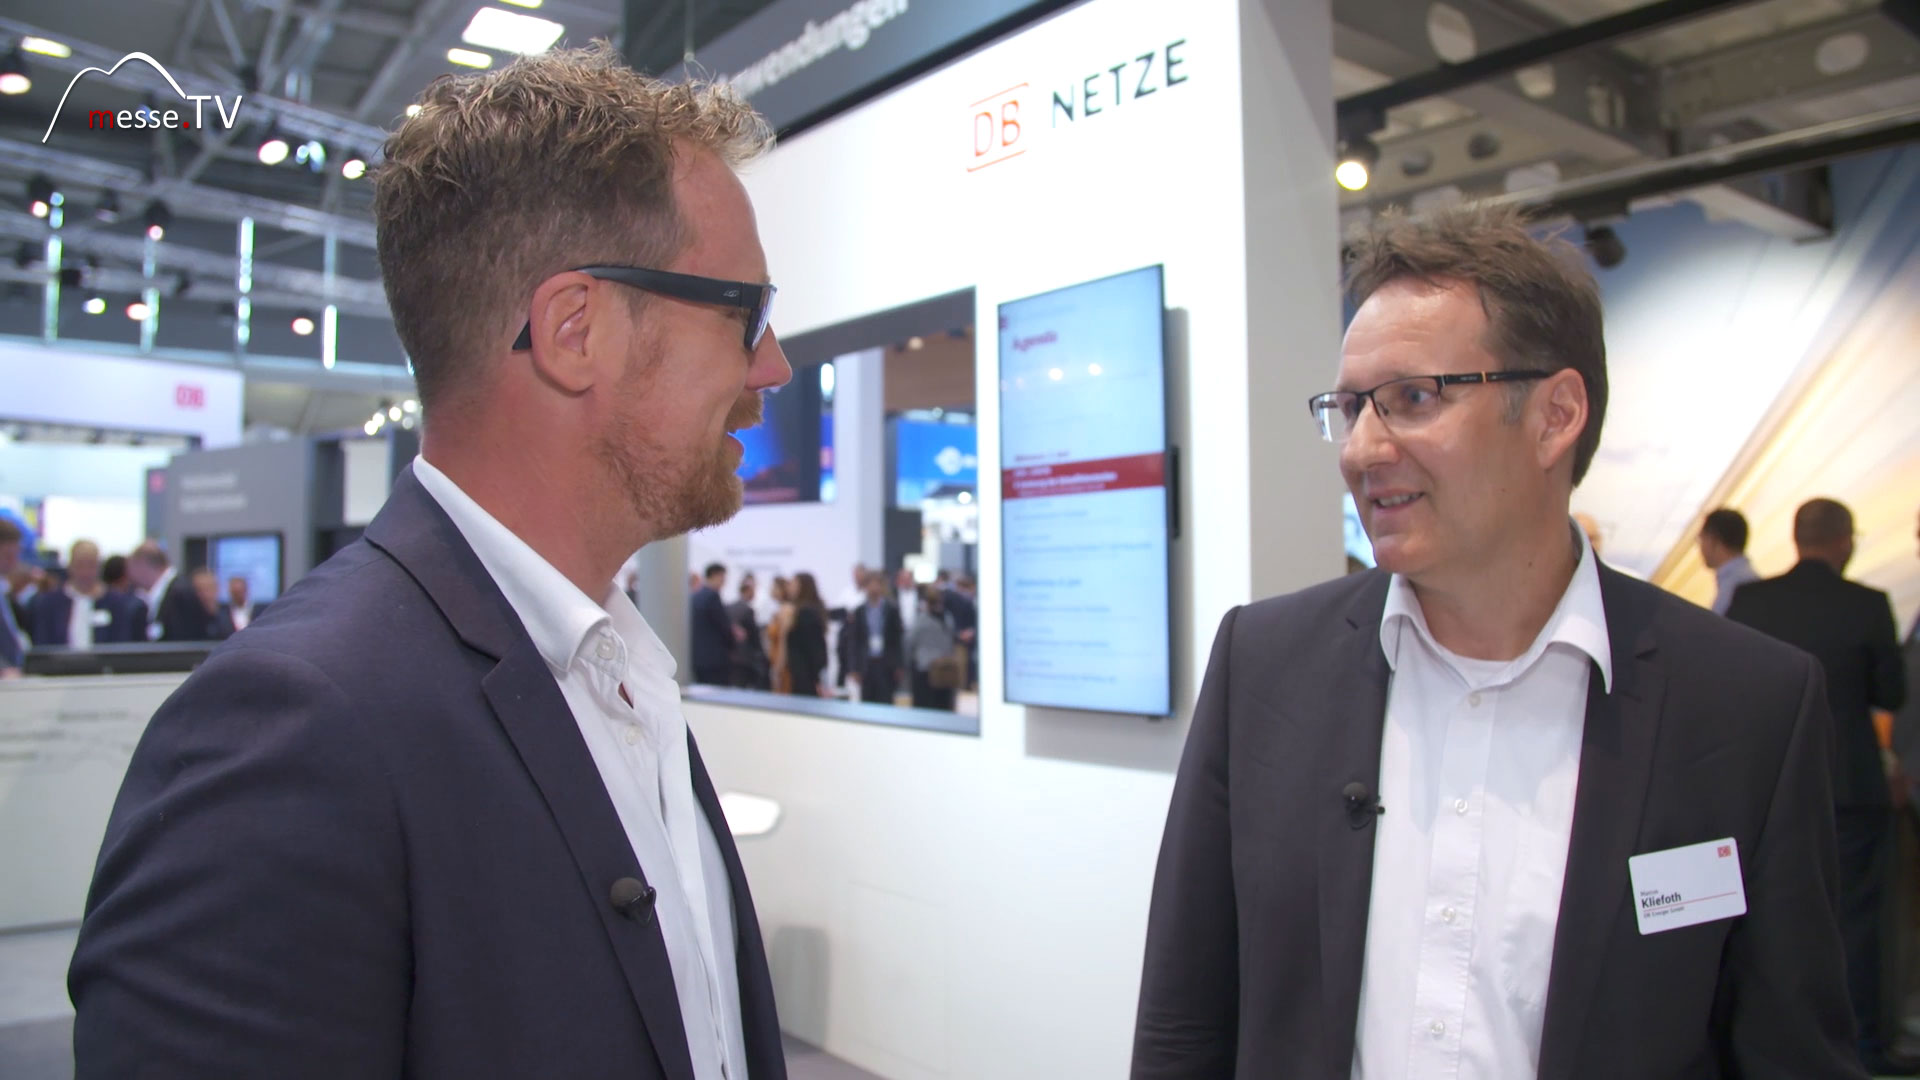 DB NETZE: Interview Marcus Kliefoth transport logistic 2019